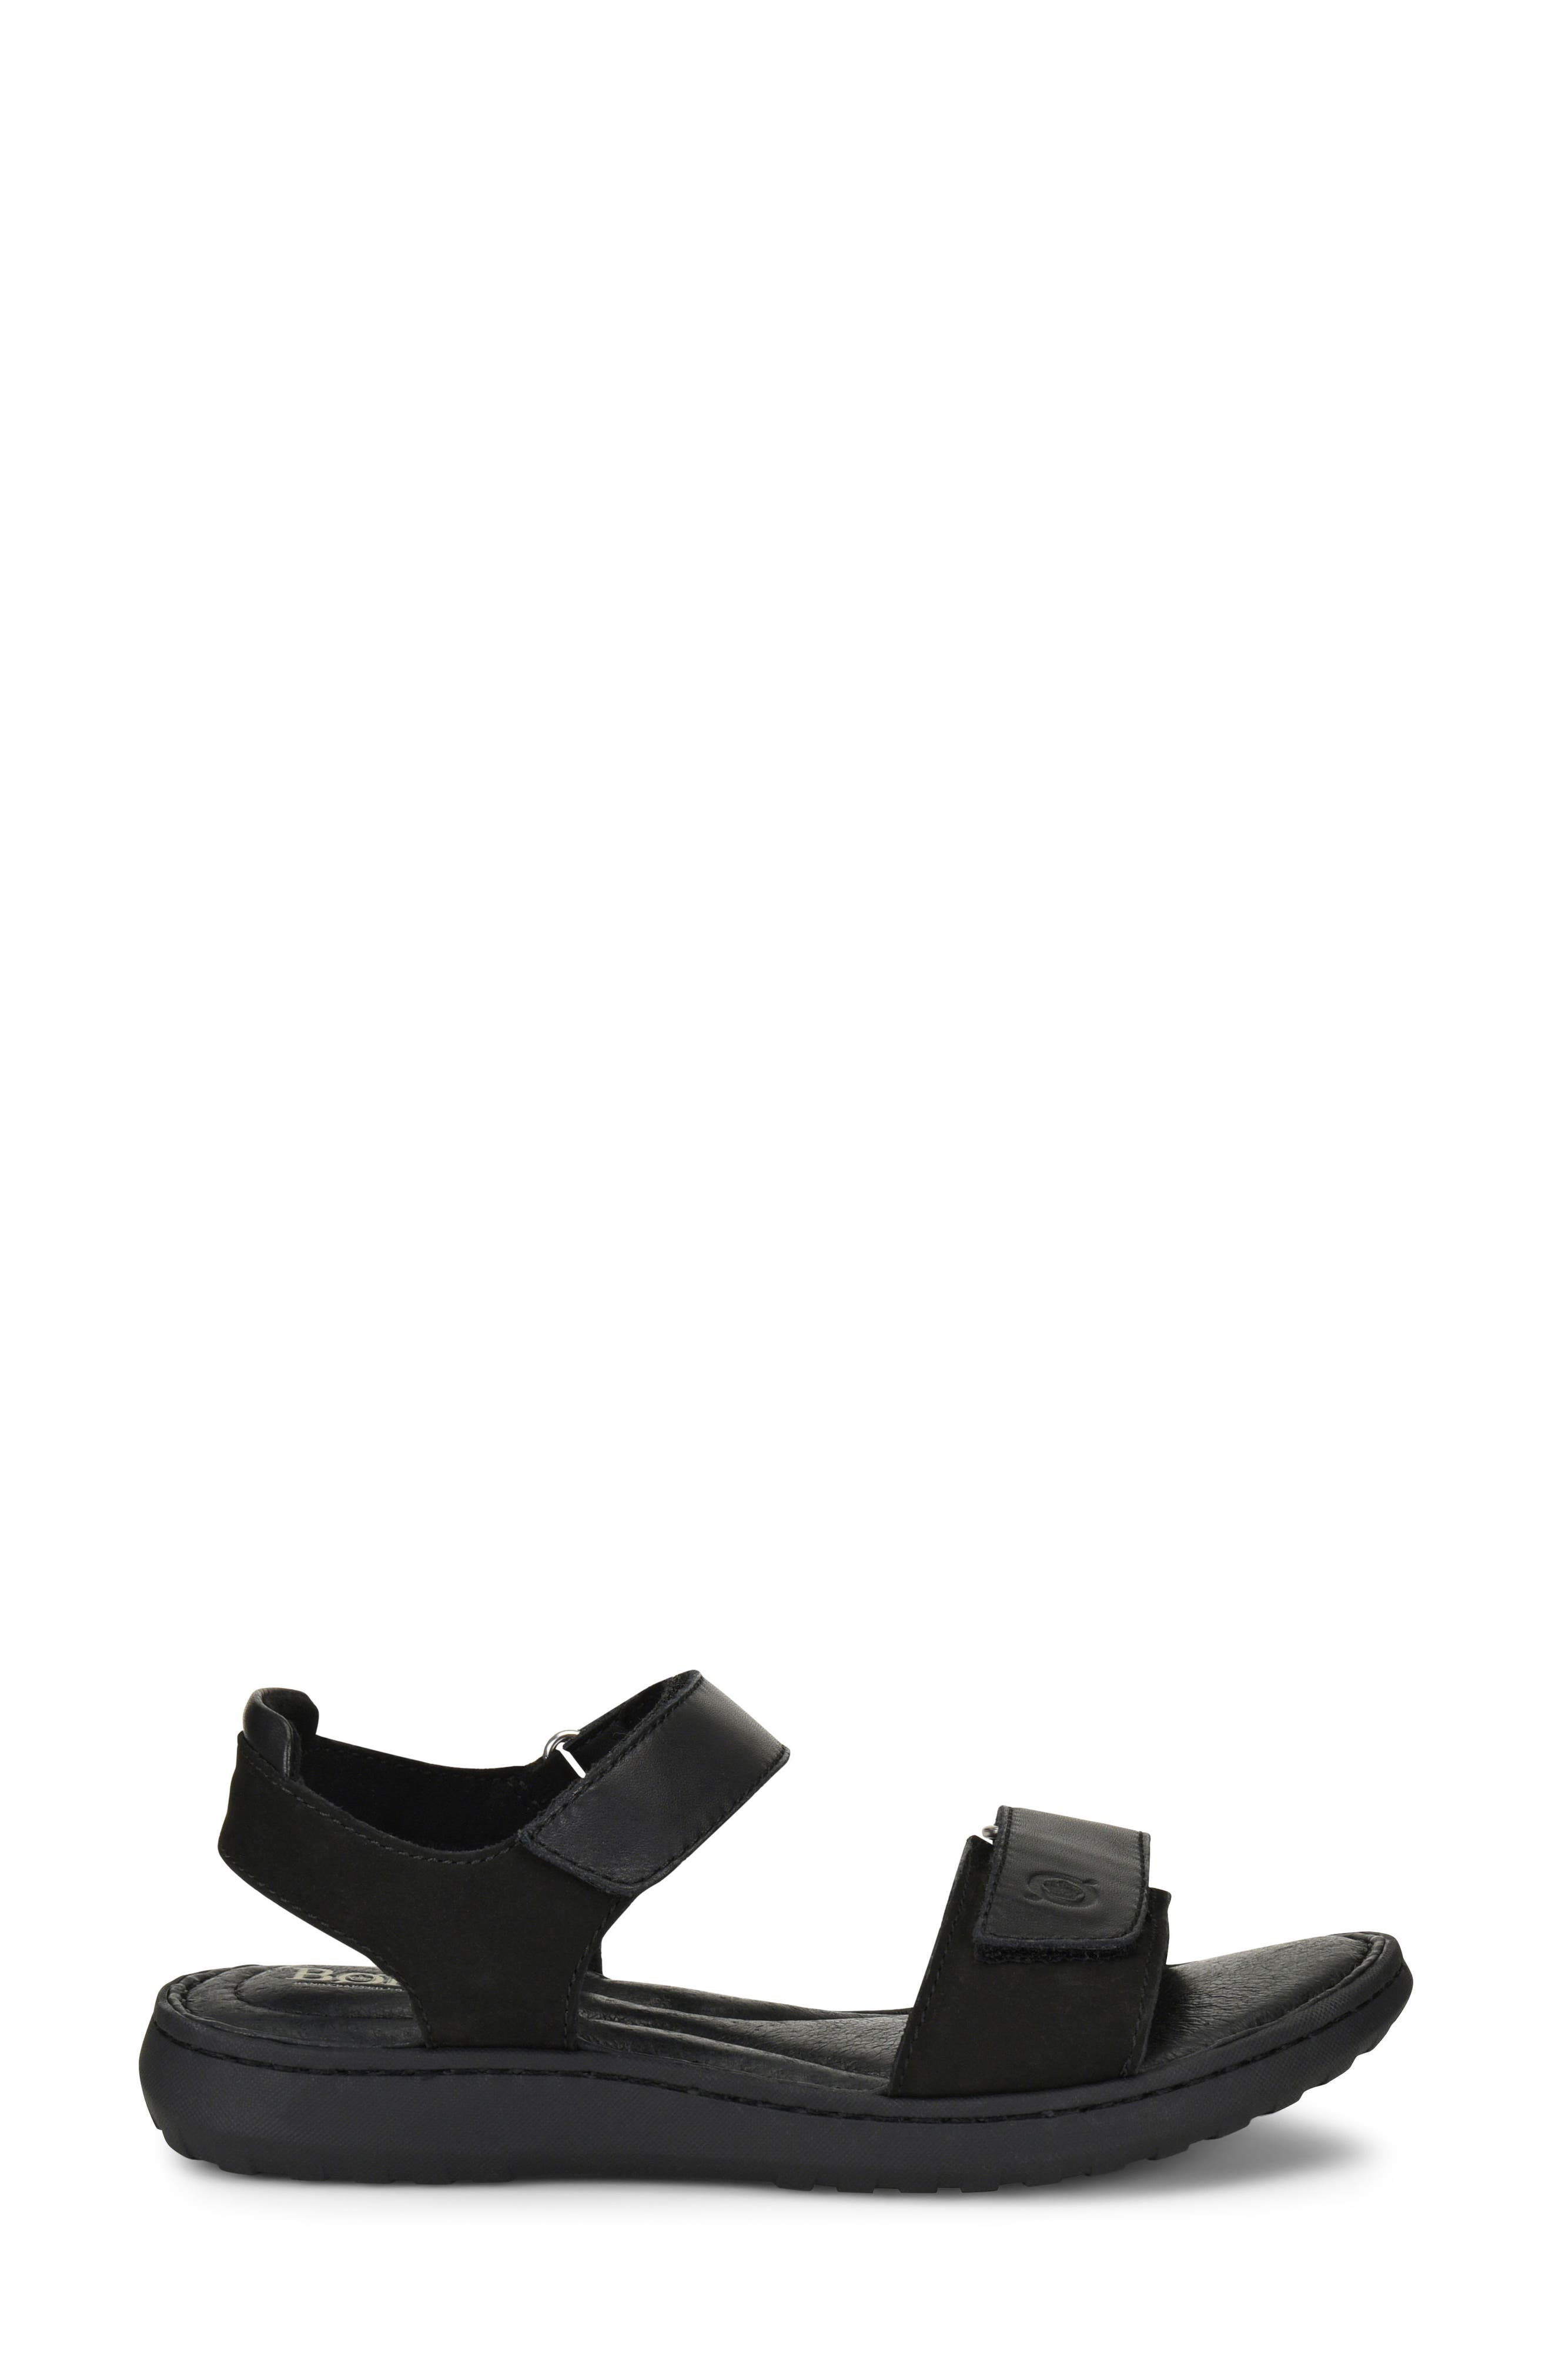 Nirvana Sandal,                             Alternate thumbnail 3, color,                             Black Leather